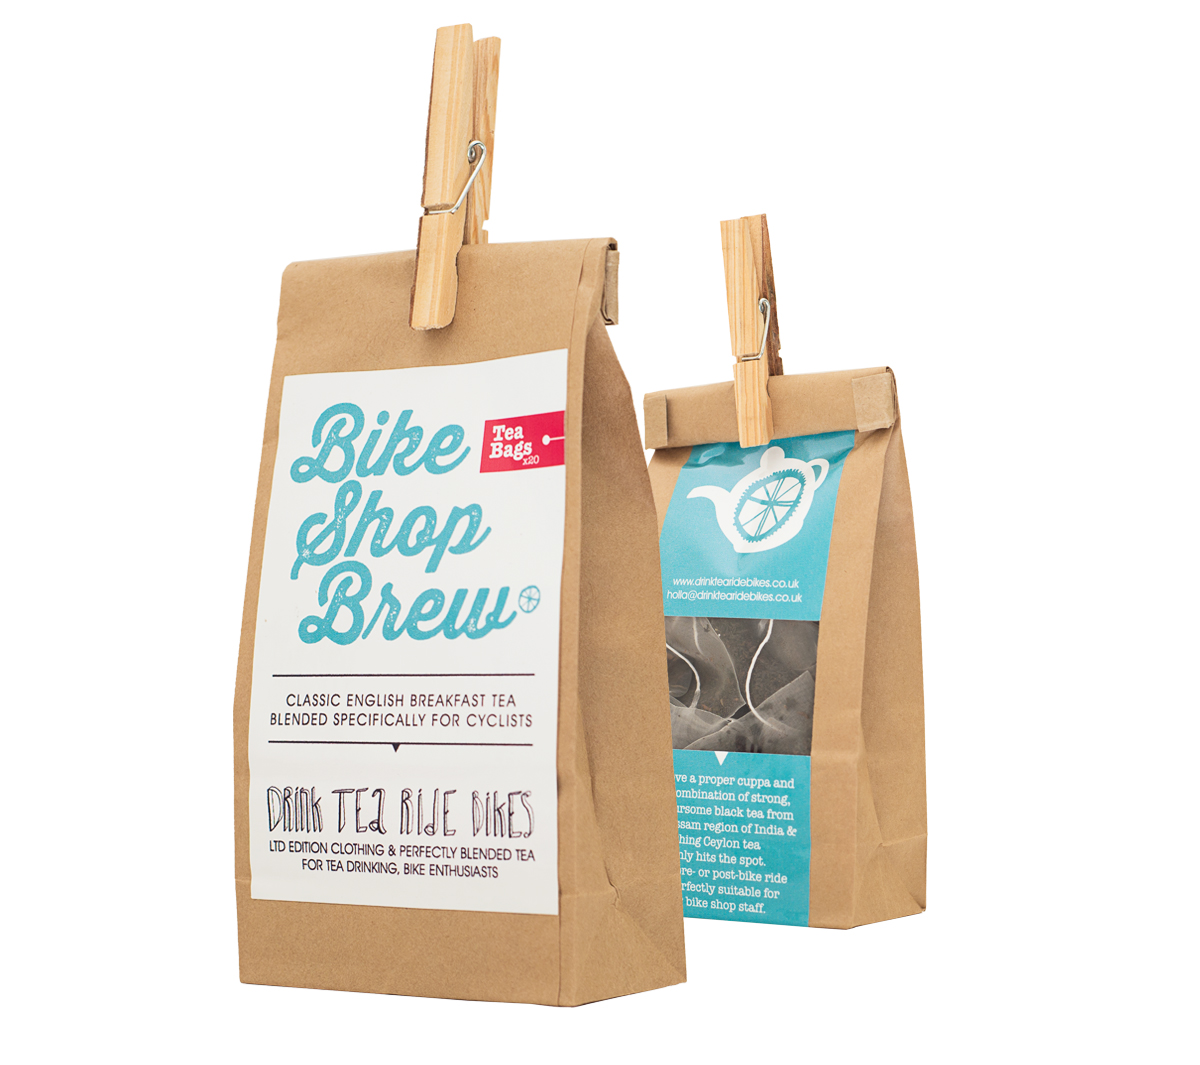 Christmas gifts for discerning cyclists